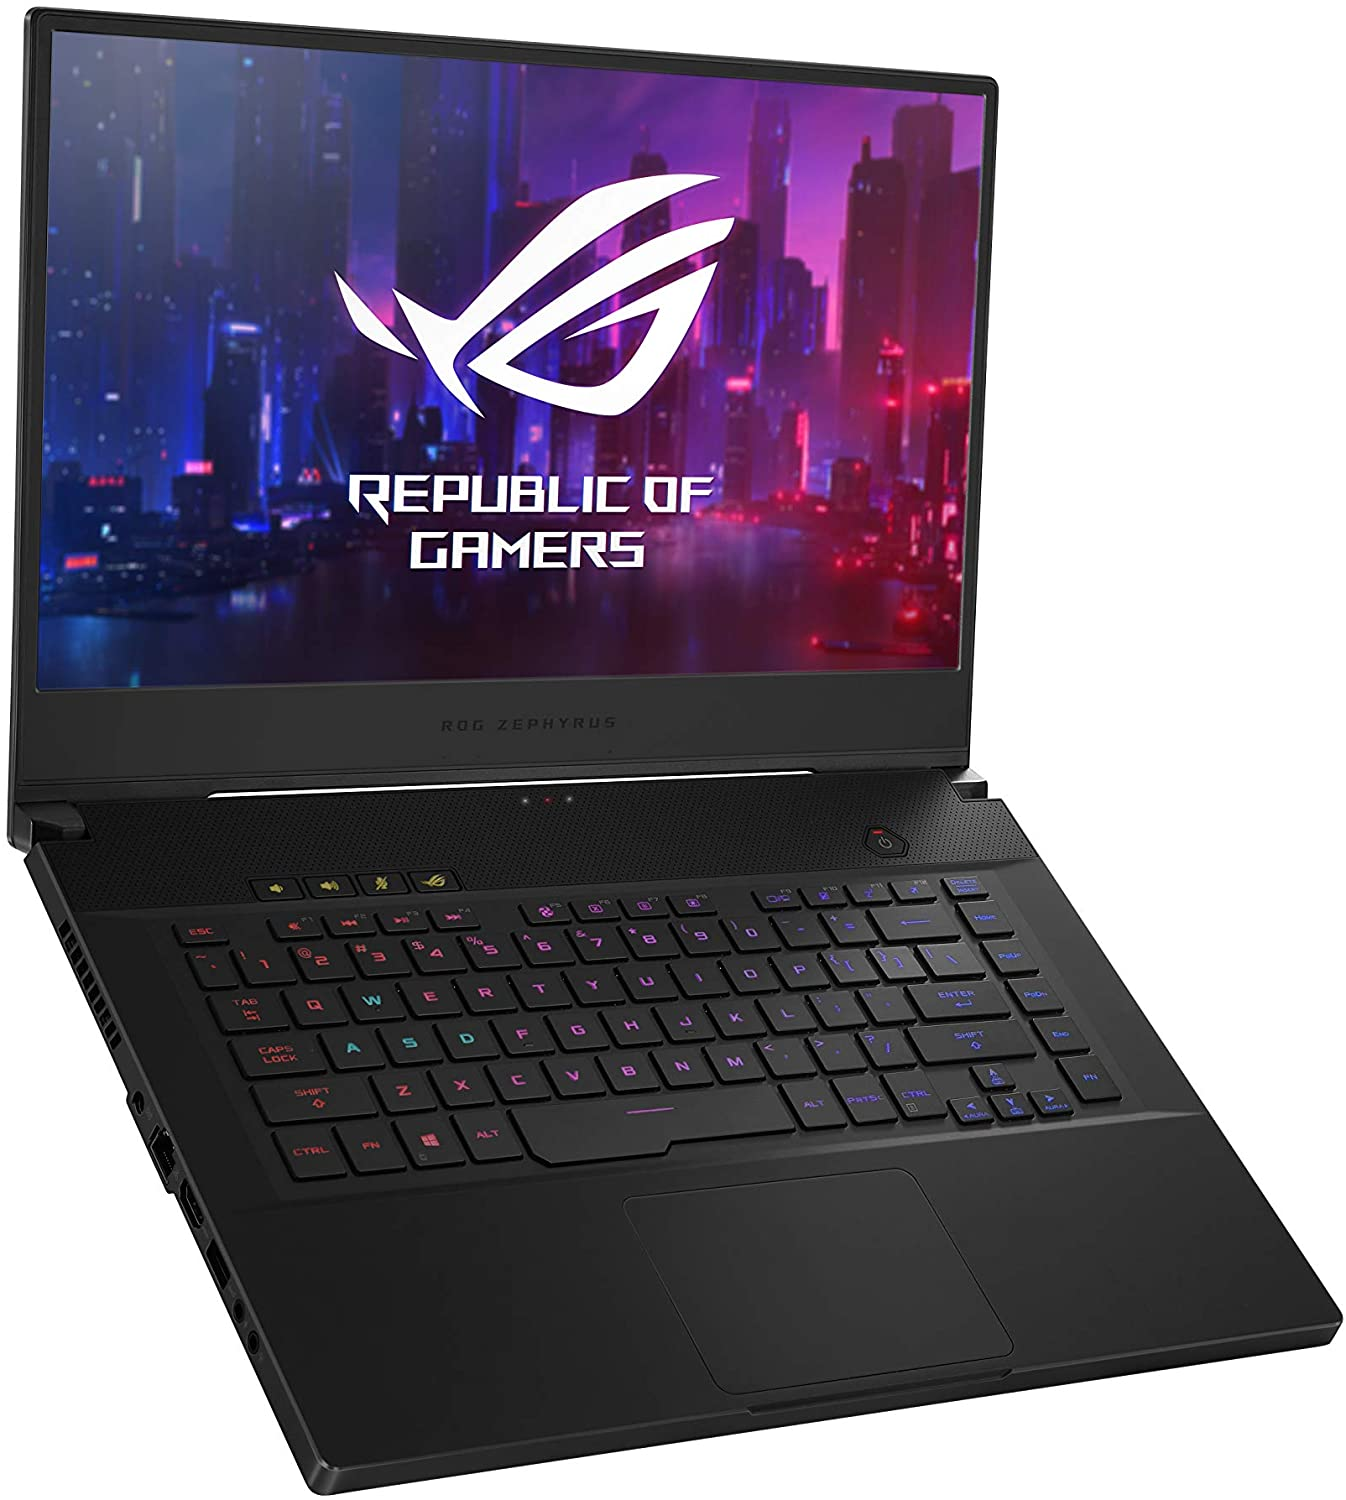 Amazon Com Asus Rog Gu502gw Ah76 Zephyrus M Thin And Portable Gaming Laptop 15 6 240hz Fhd Ips Nvidia Geforce Rtx 2070 Intel Core I7 9750h 16gb Ddr4 Ram 1tb Pcie Ssd Per Key Rgb Windows 10